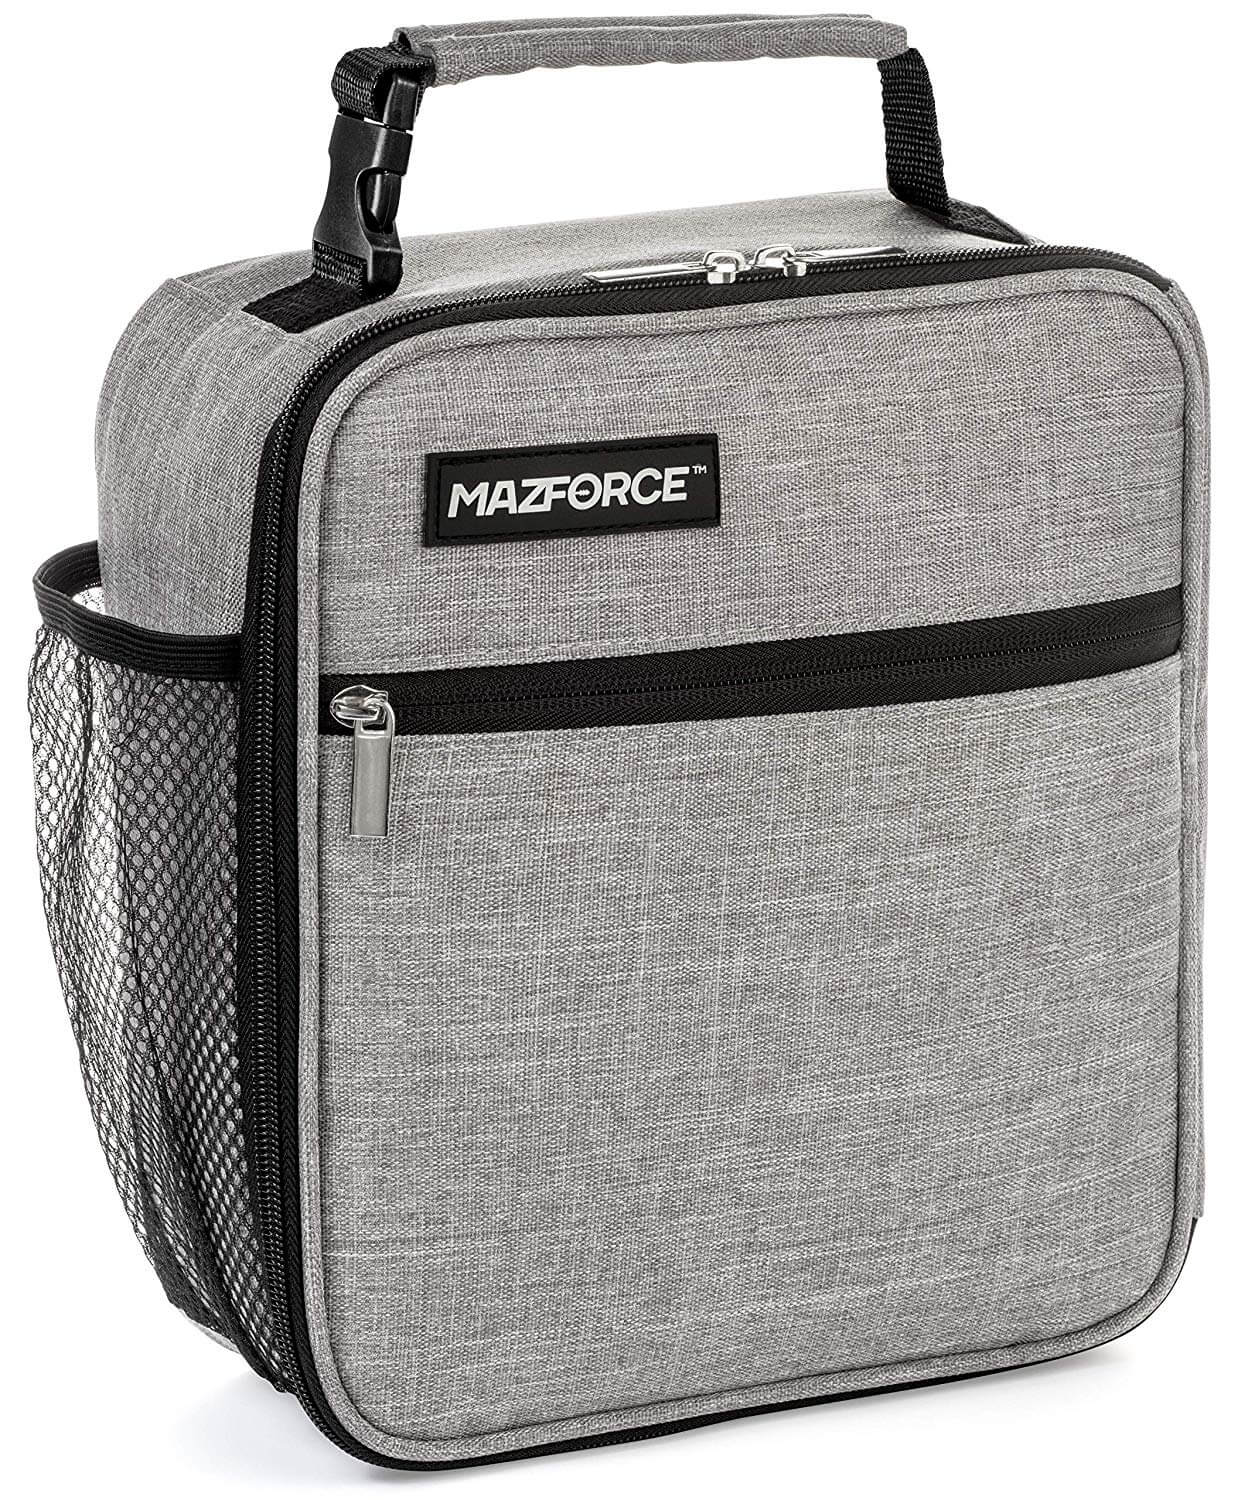 MAZFORCE Original Lunch Box Insulated Lunch Bag